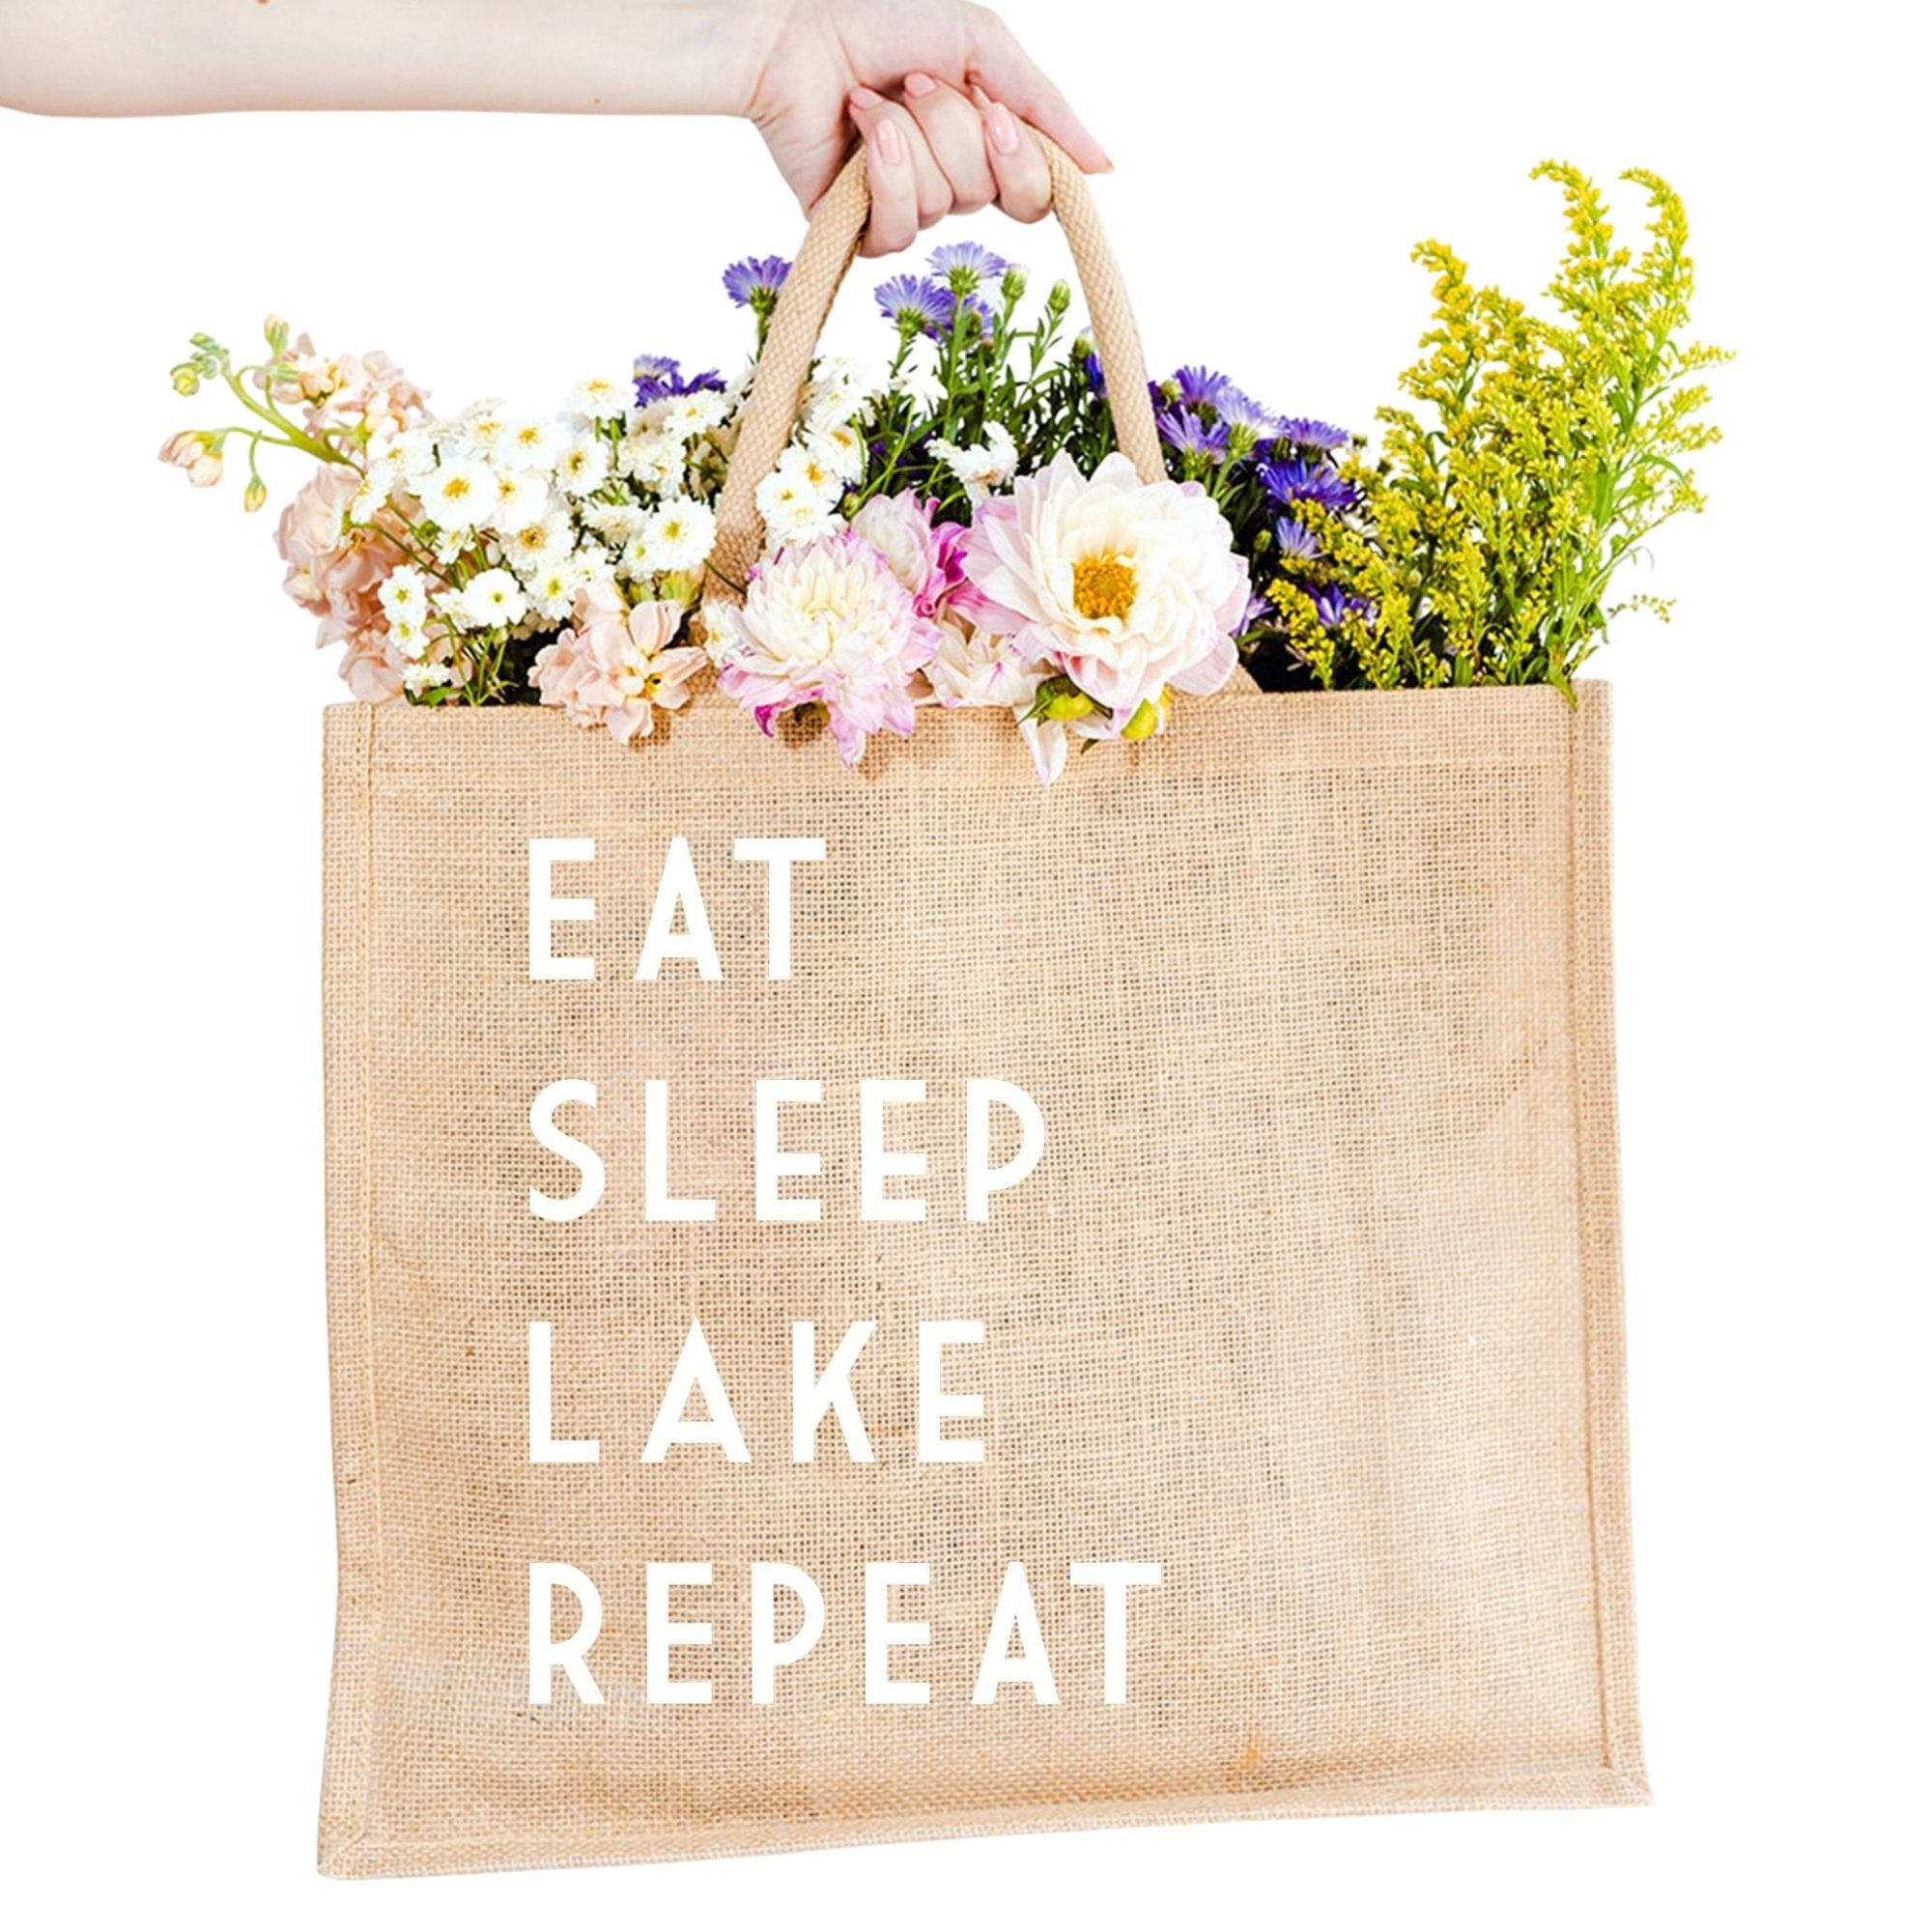 Eat Sleep Lake Repeat Jute Carryall - Sprinkled With Pink #bachelorette #custom #gifts